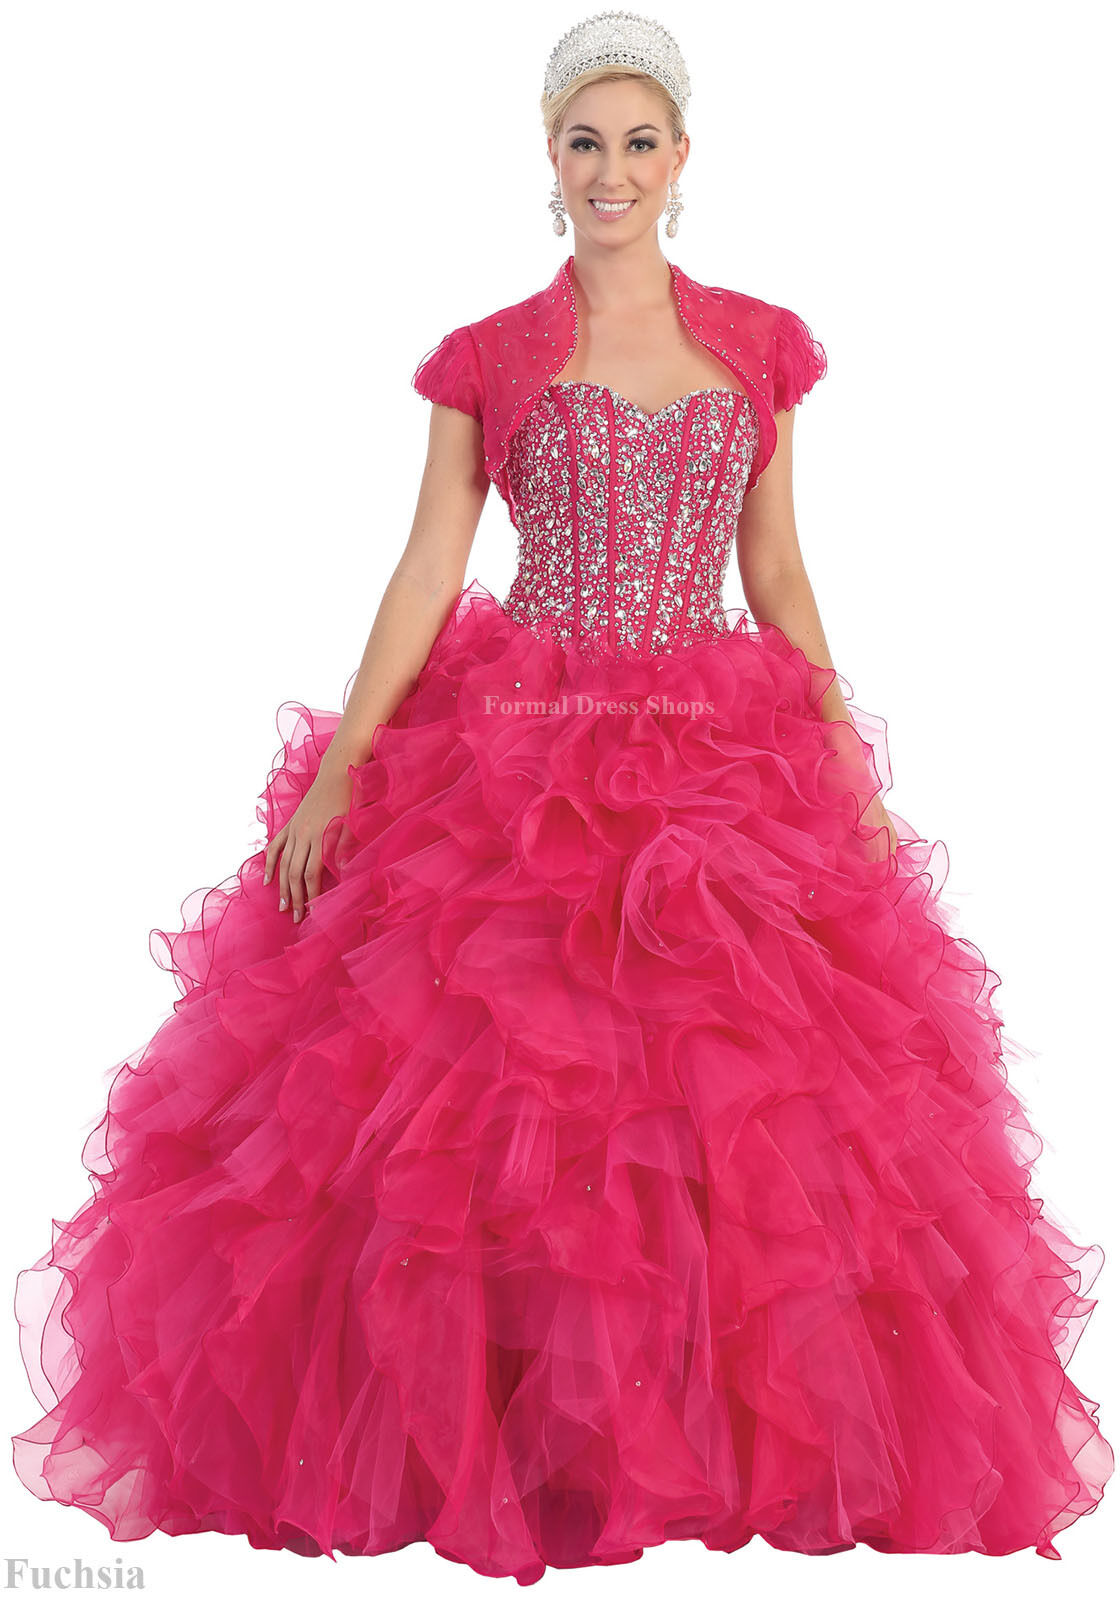 Sale Masquerade Quinceanera Ball Dress Pageant Military Wedding Sweet 16 Gowns Ebay